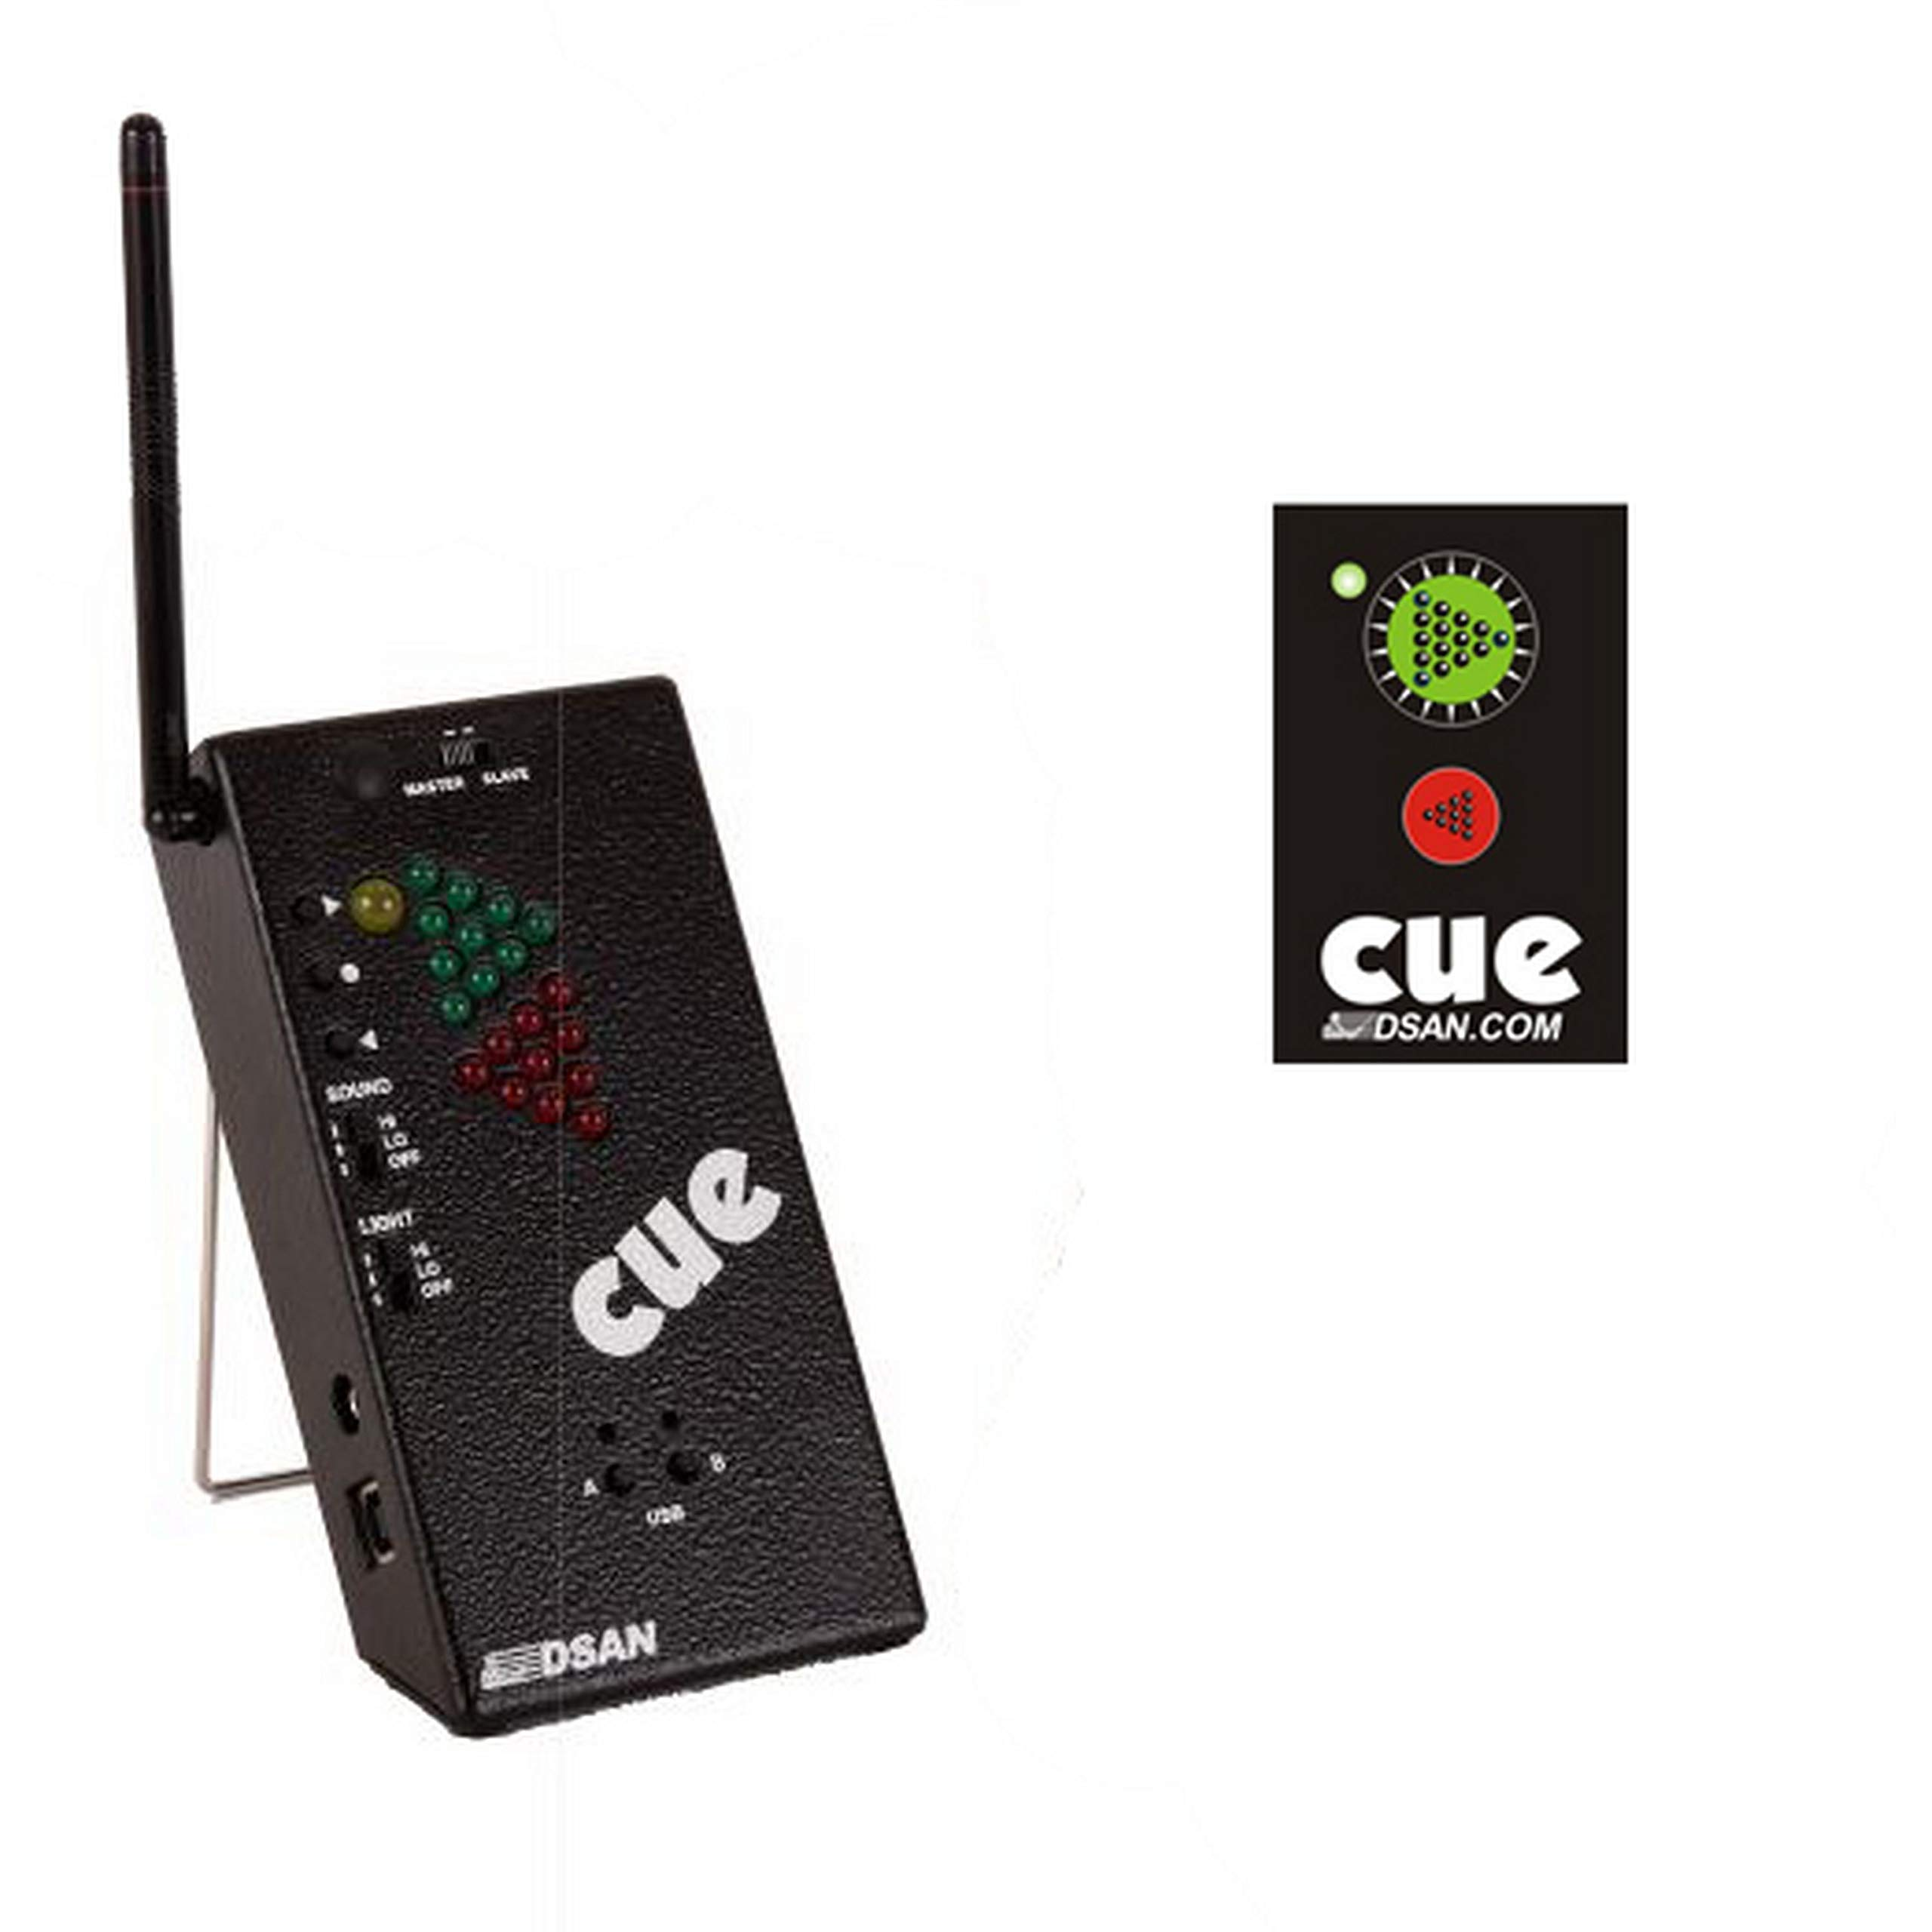 DSAN PC-433-Mini PerfectCue Mini USB Powered Cue Light System with 2-Command Button Remote by DSAN (Image #1)